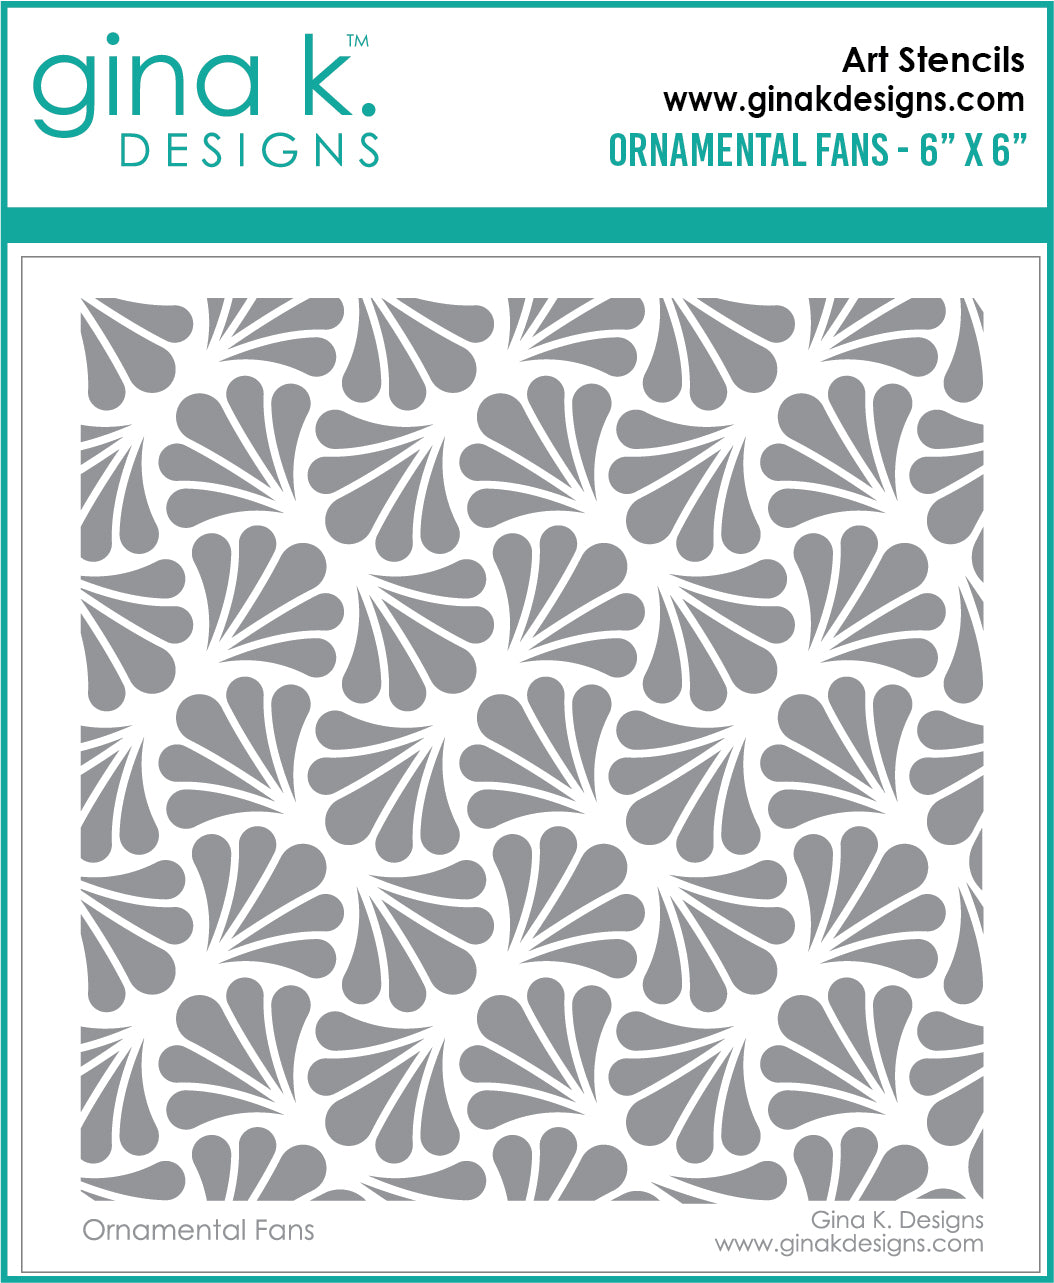 DIRECT BUY GINA K DESIGNS STENCIL ORNAMENTAL FANS (HAS TO BE ORDERED)